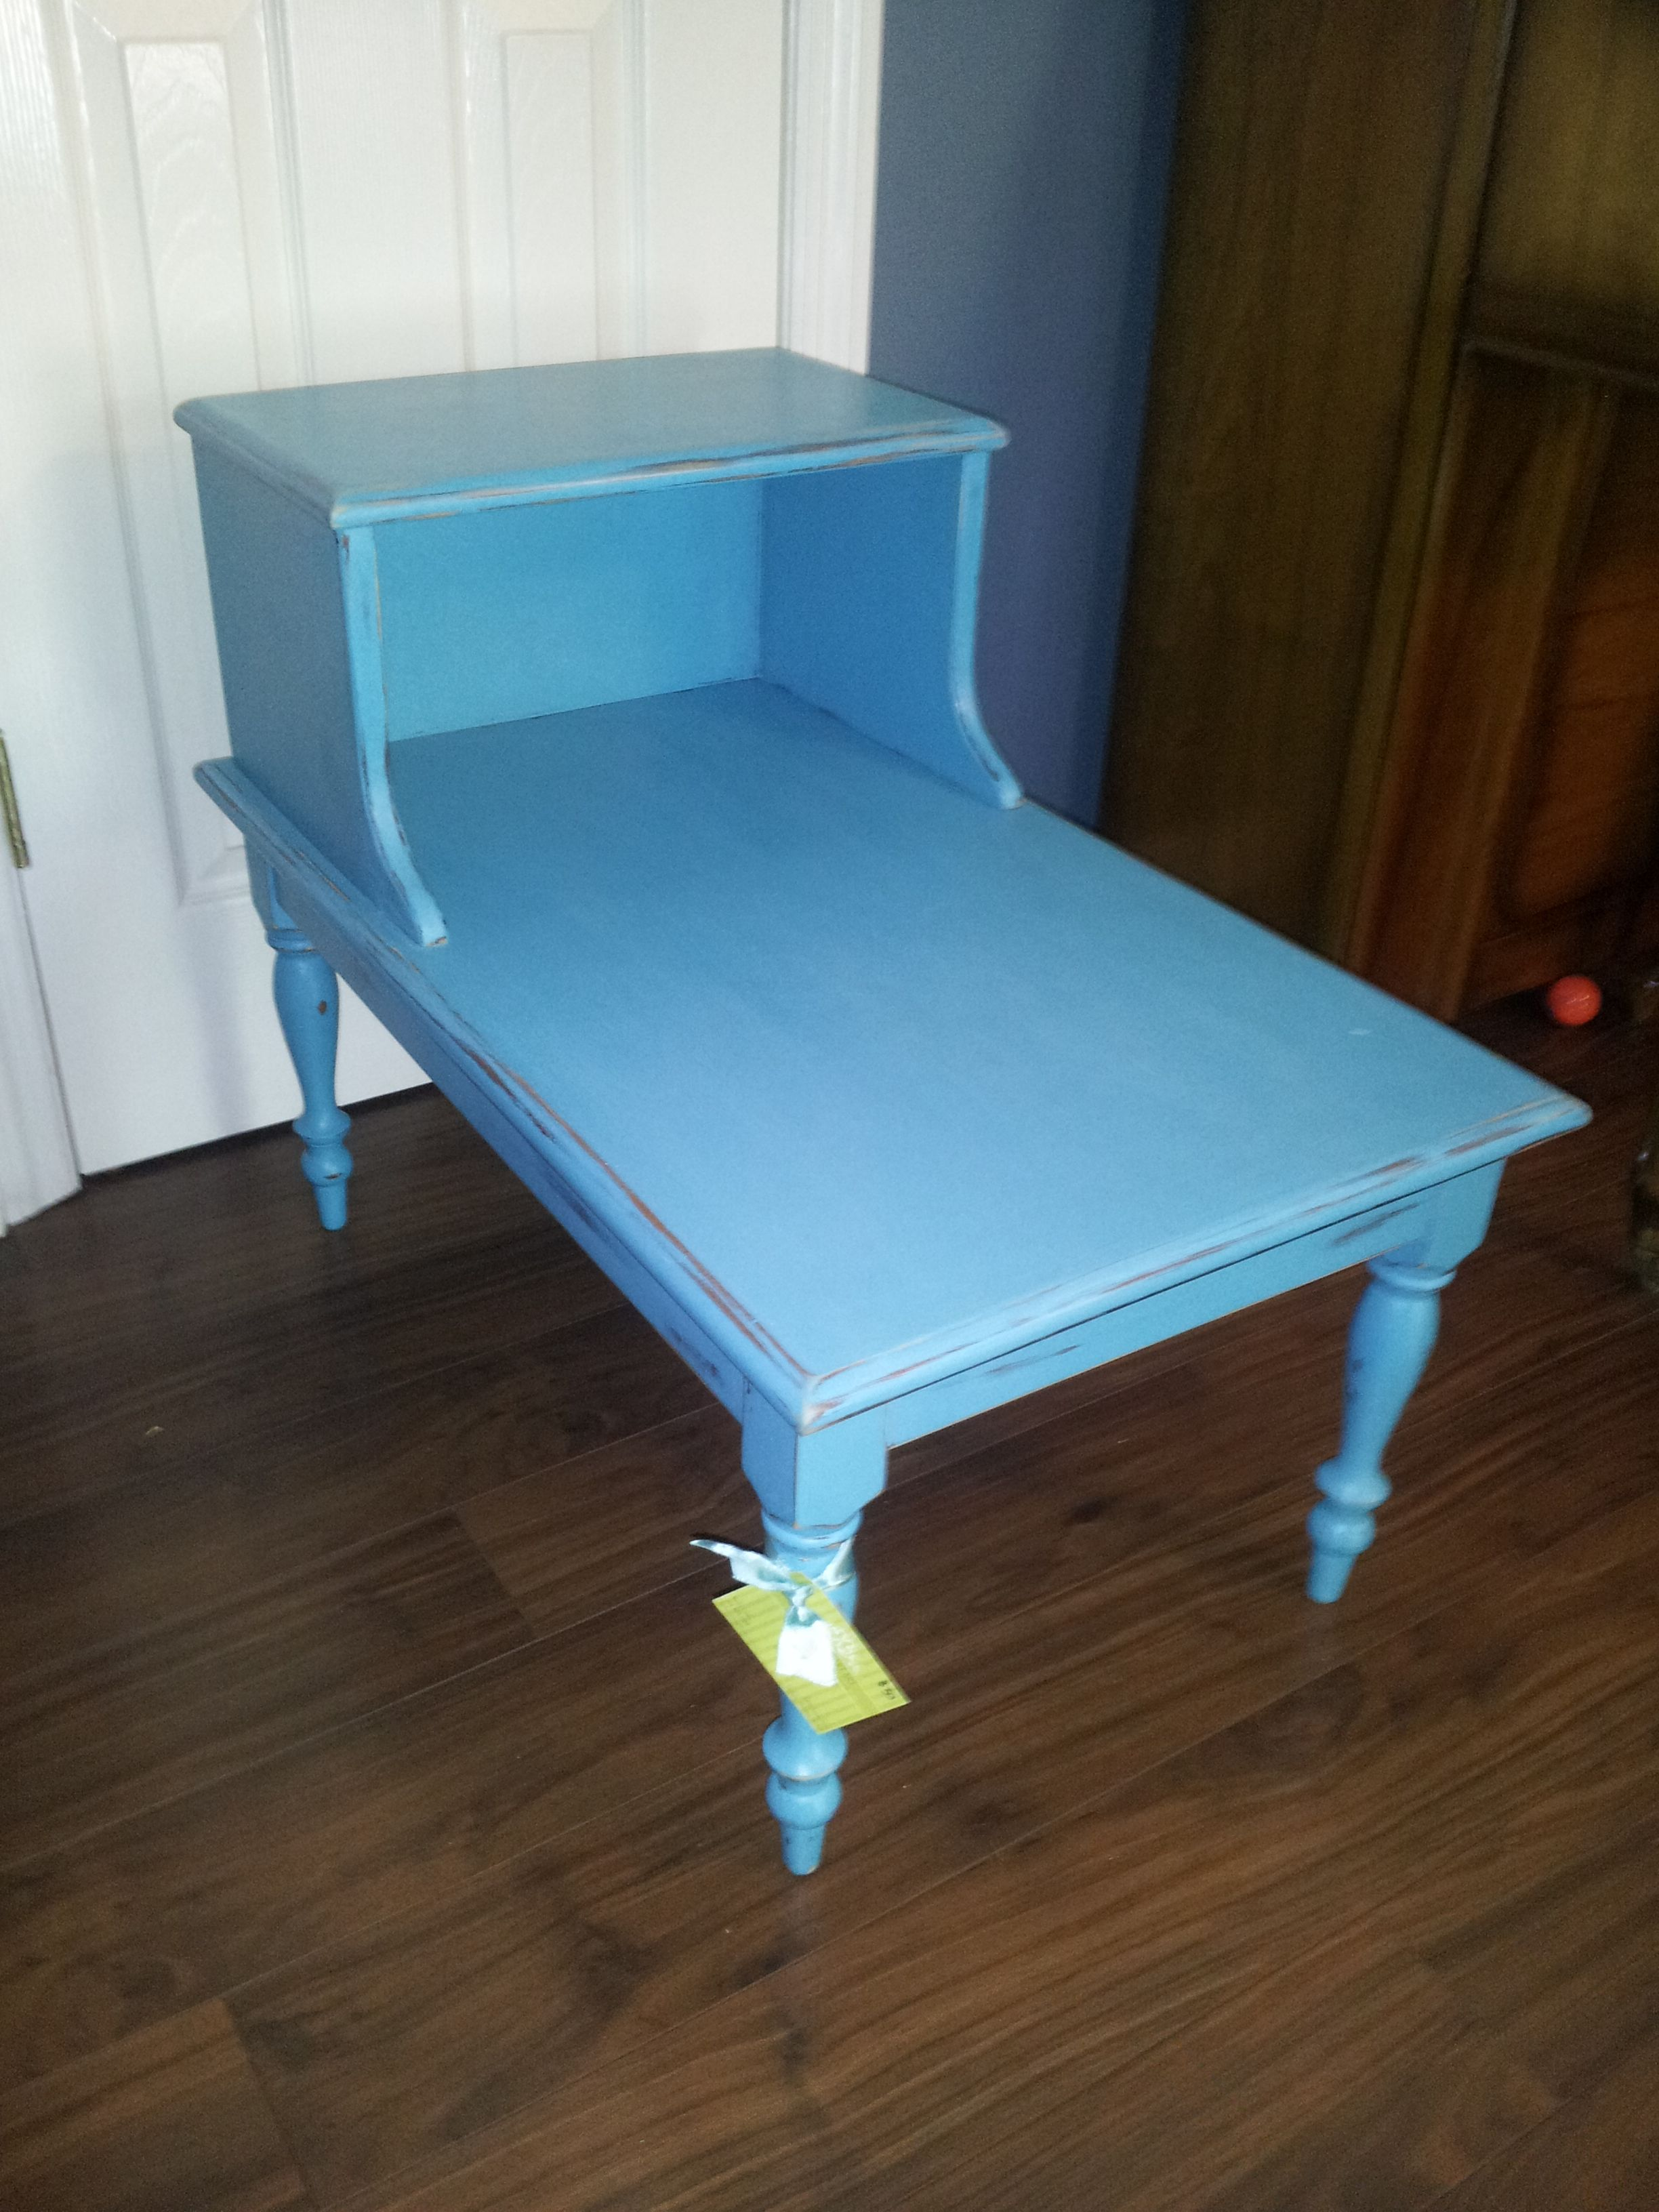 Turquoise Two Tier End Table Furniture Refinishing Homemade Chalk Paint Bless Your Heart Art Kathryncrews Com Furniture Rehab Furniture Dyi Furniture